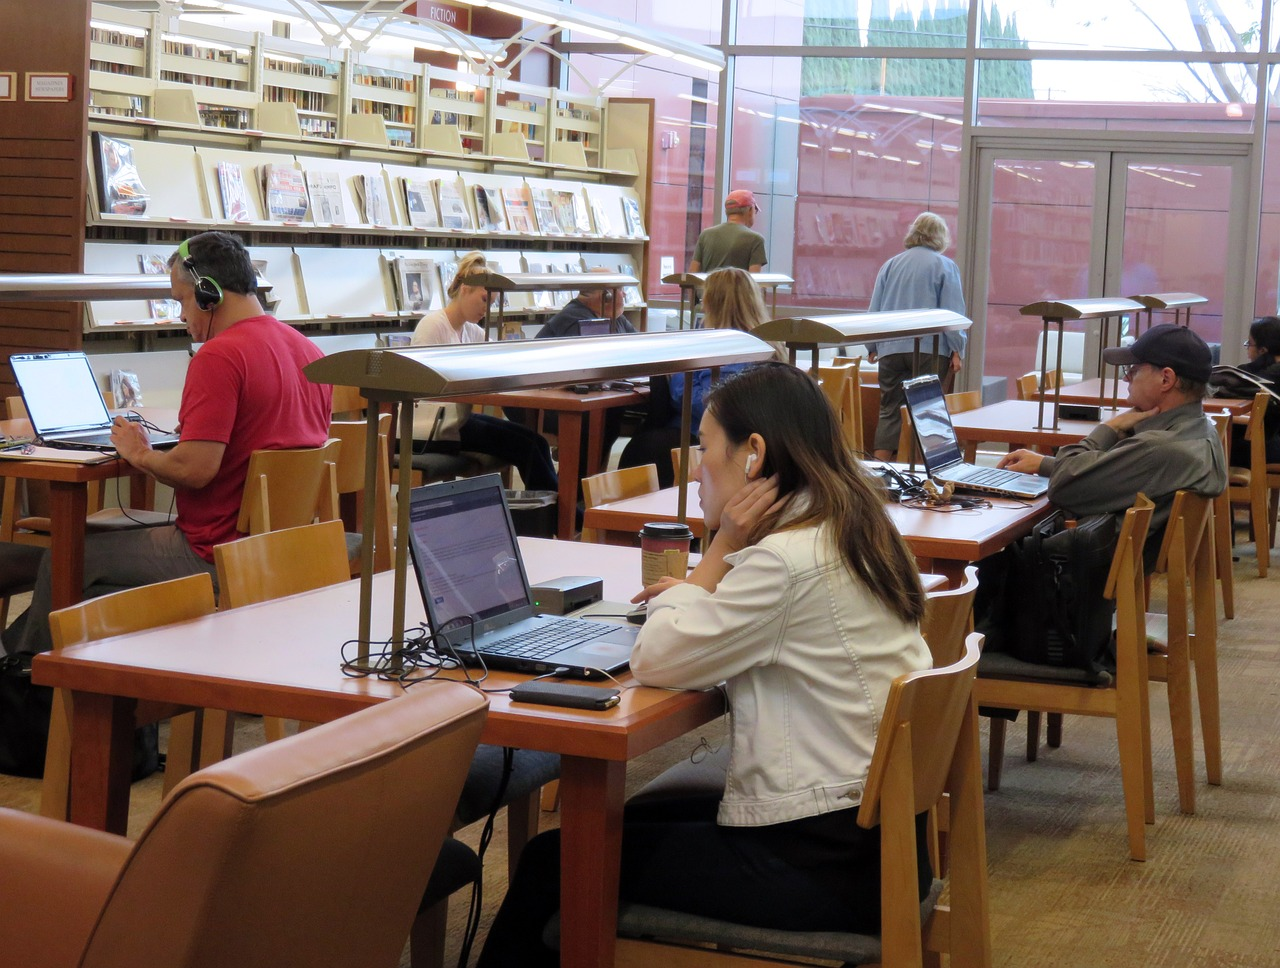 people studying in reading room